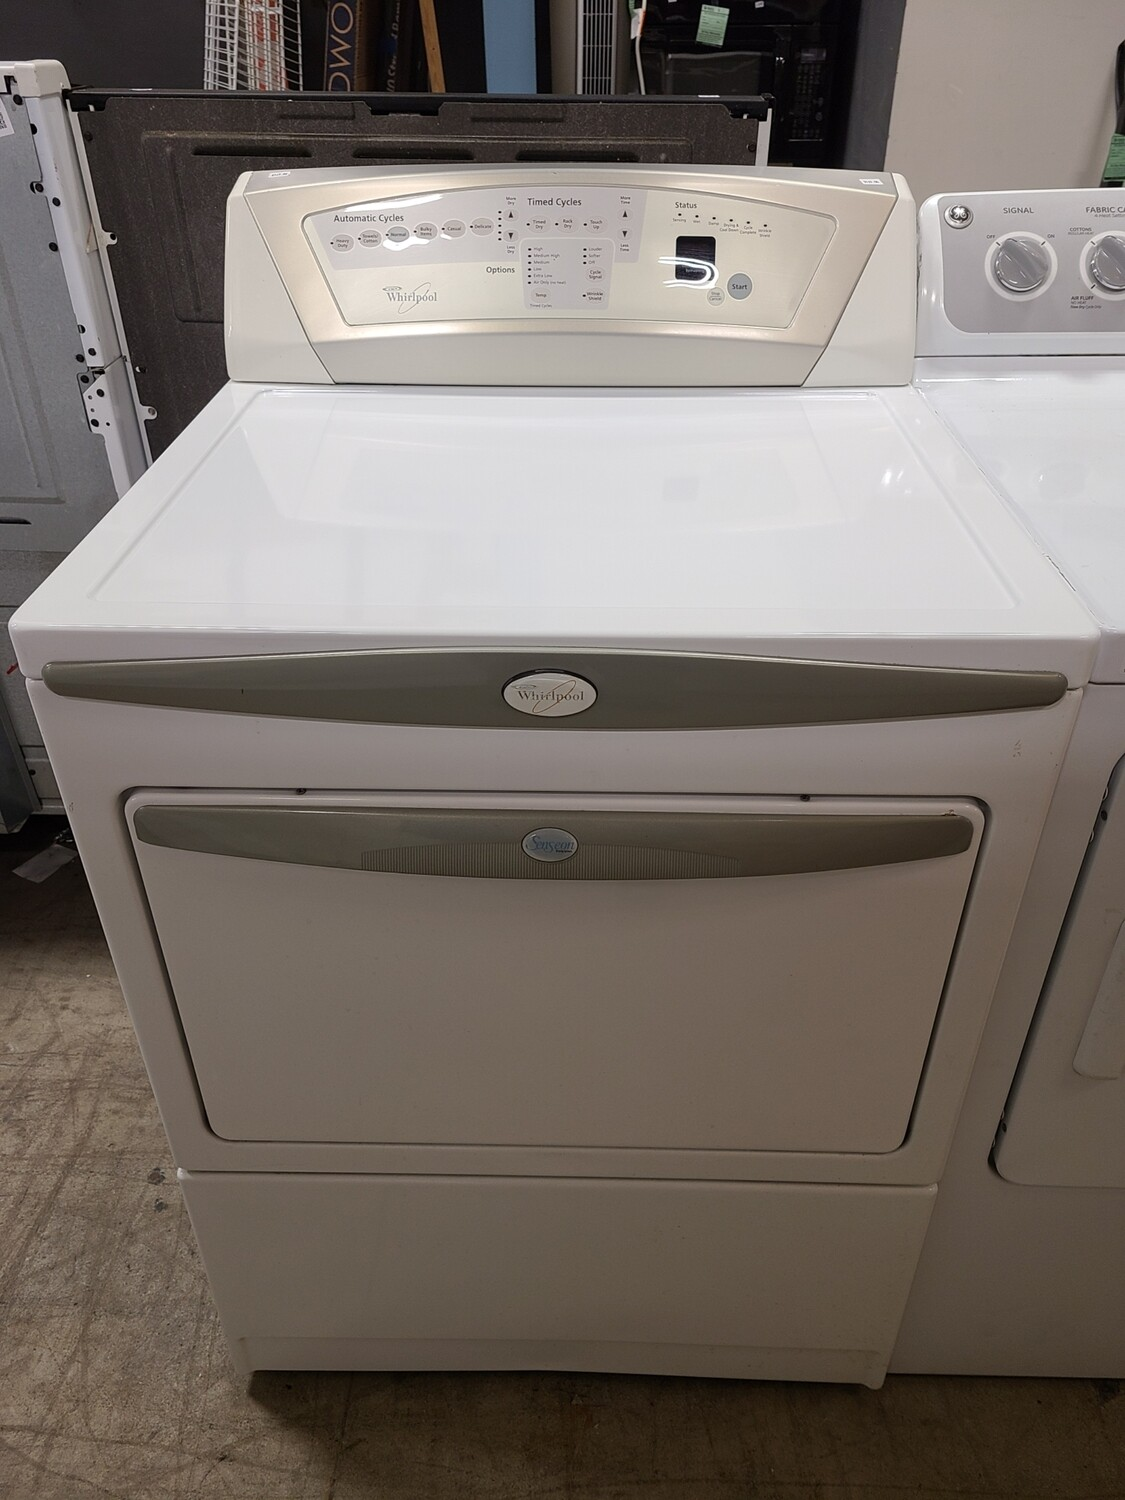 NG Whirlpool Dryer